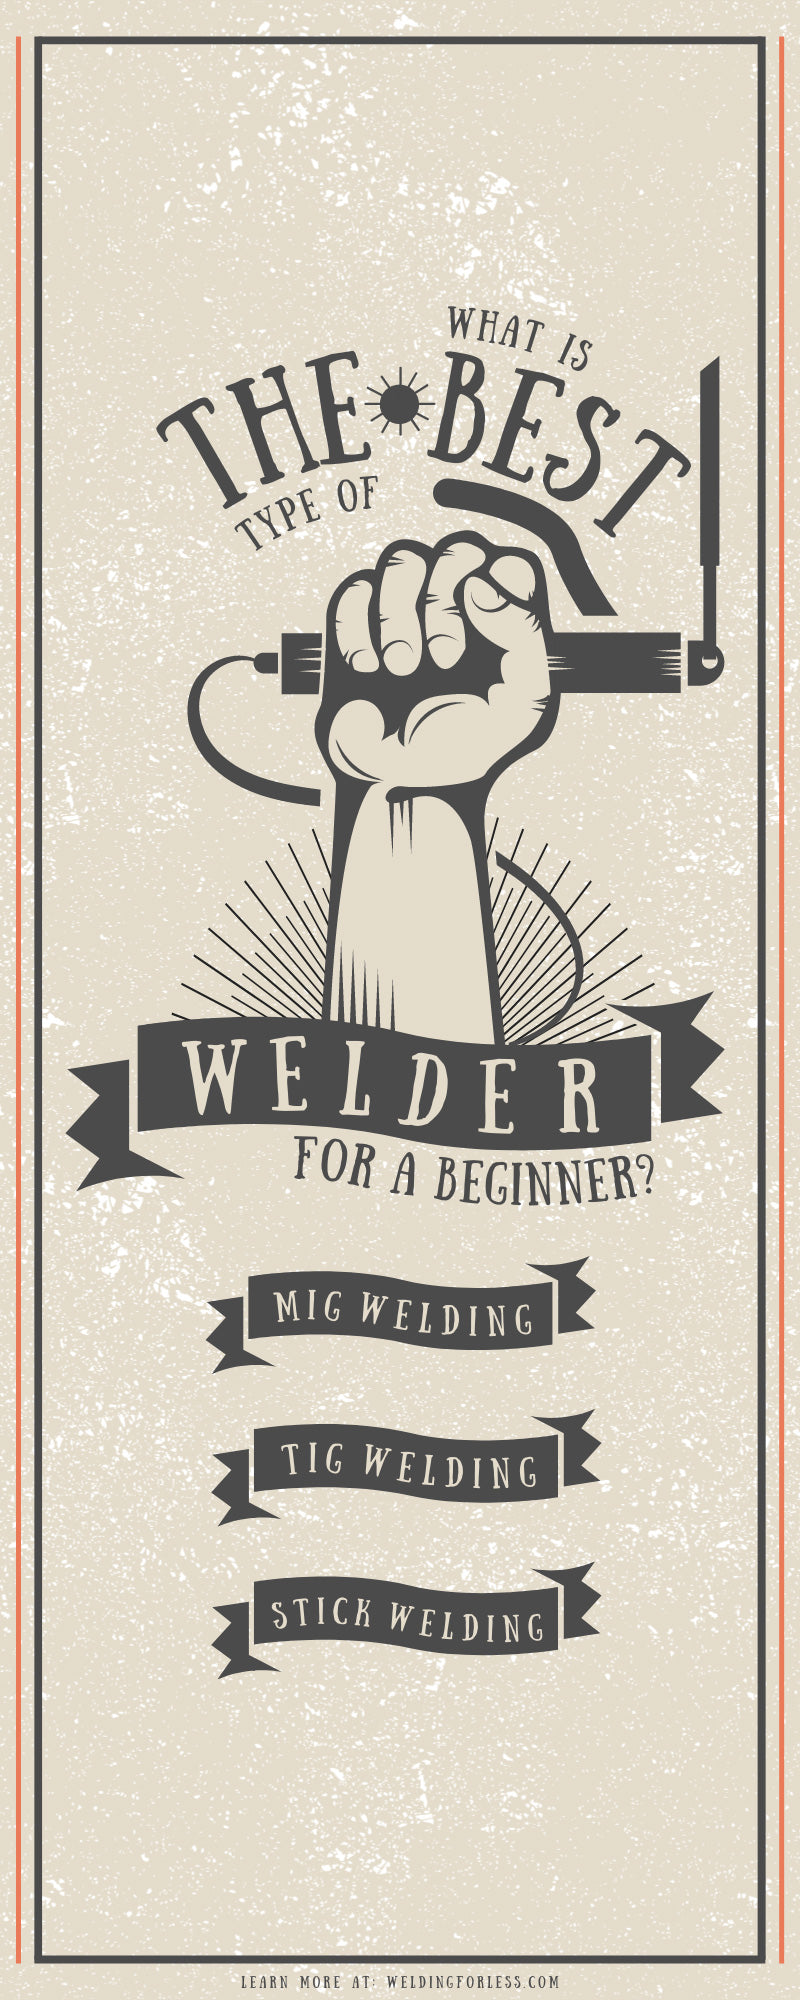 What Is the Best Type of Welder for a Beginner?